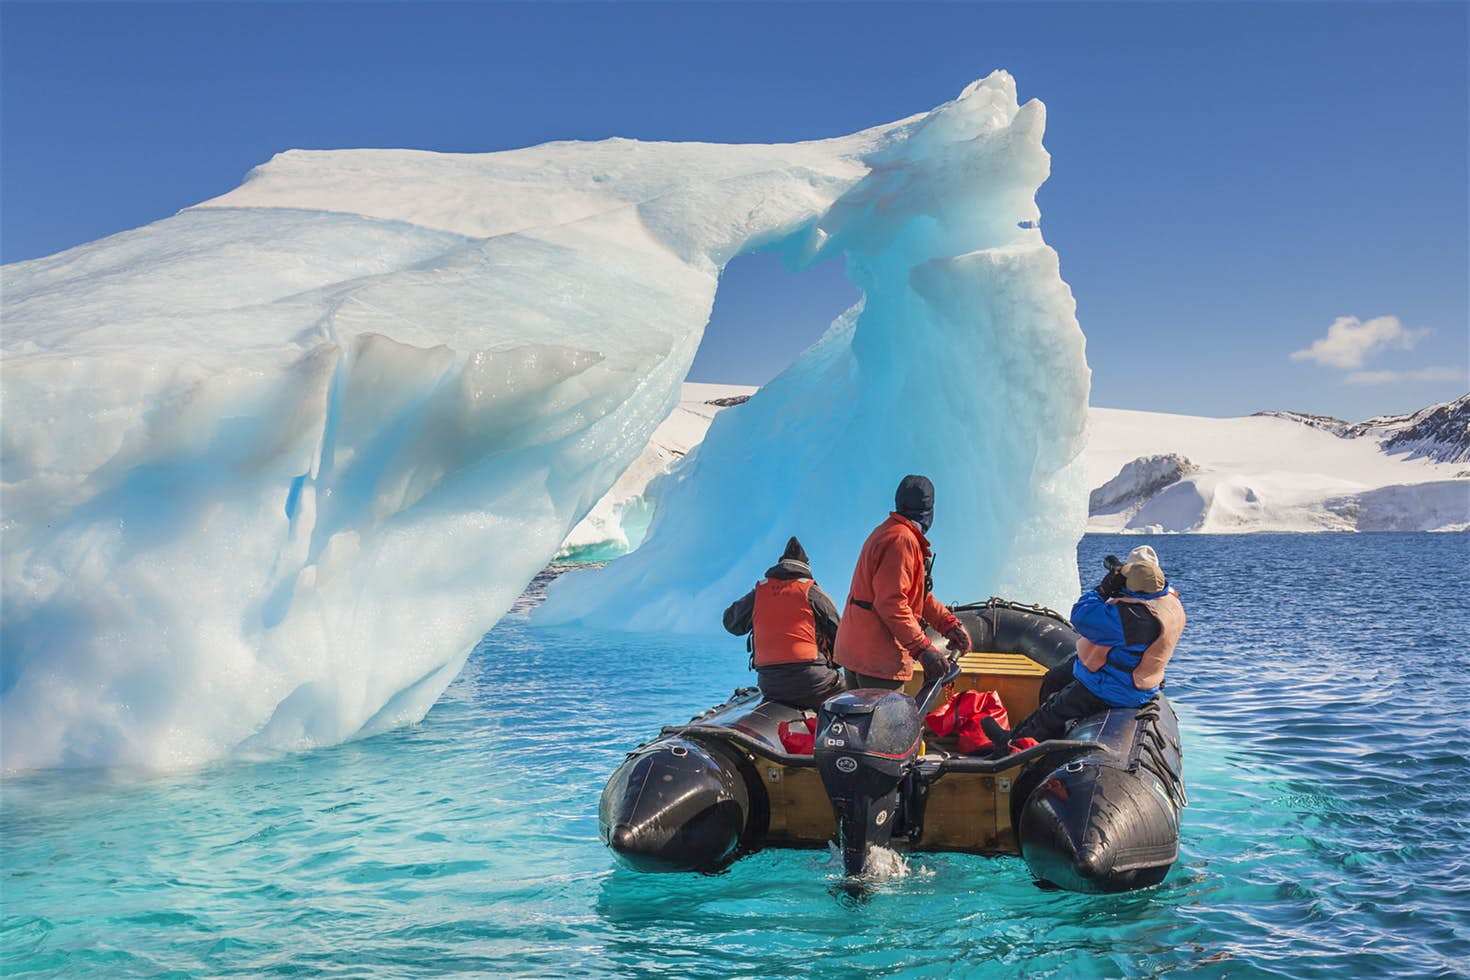 Tourists on a Zodiac exploring the icebergs of the Antarctic Peninsula © Patrick Endres / Getty Images